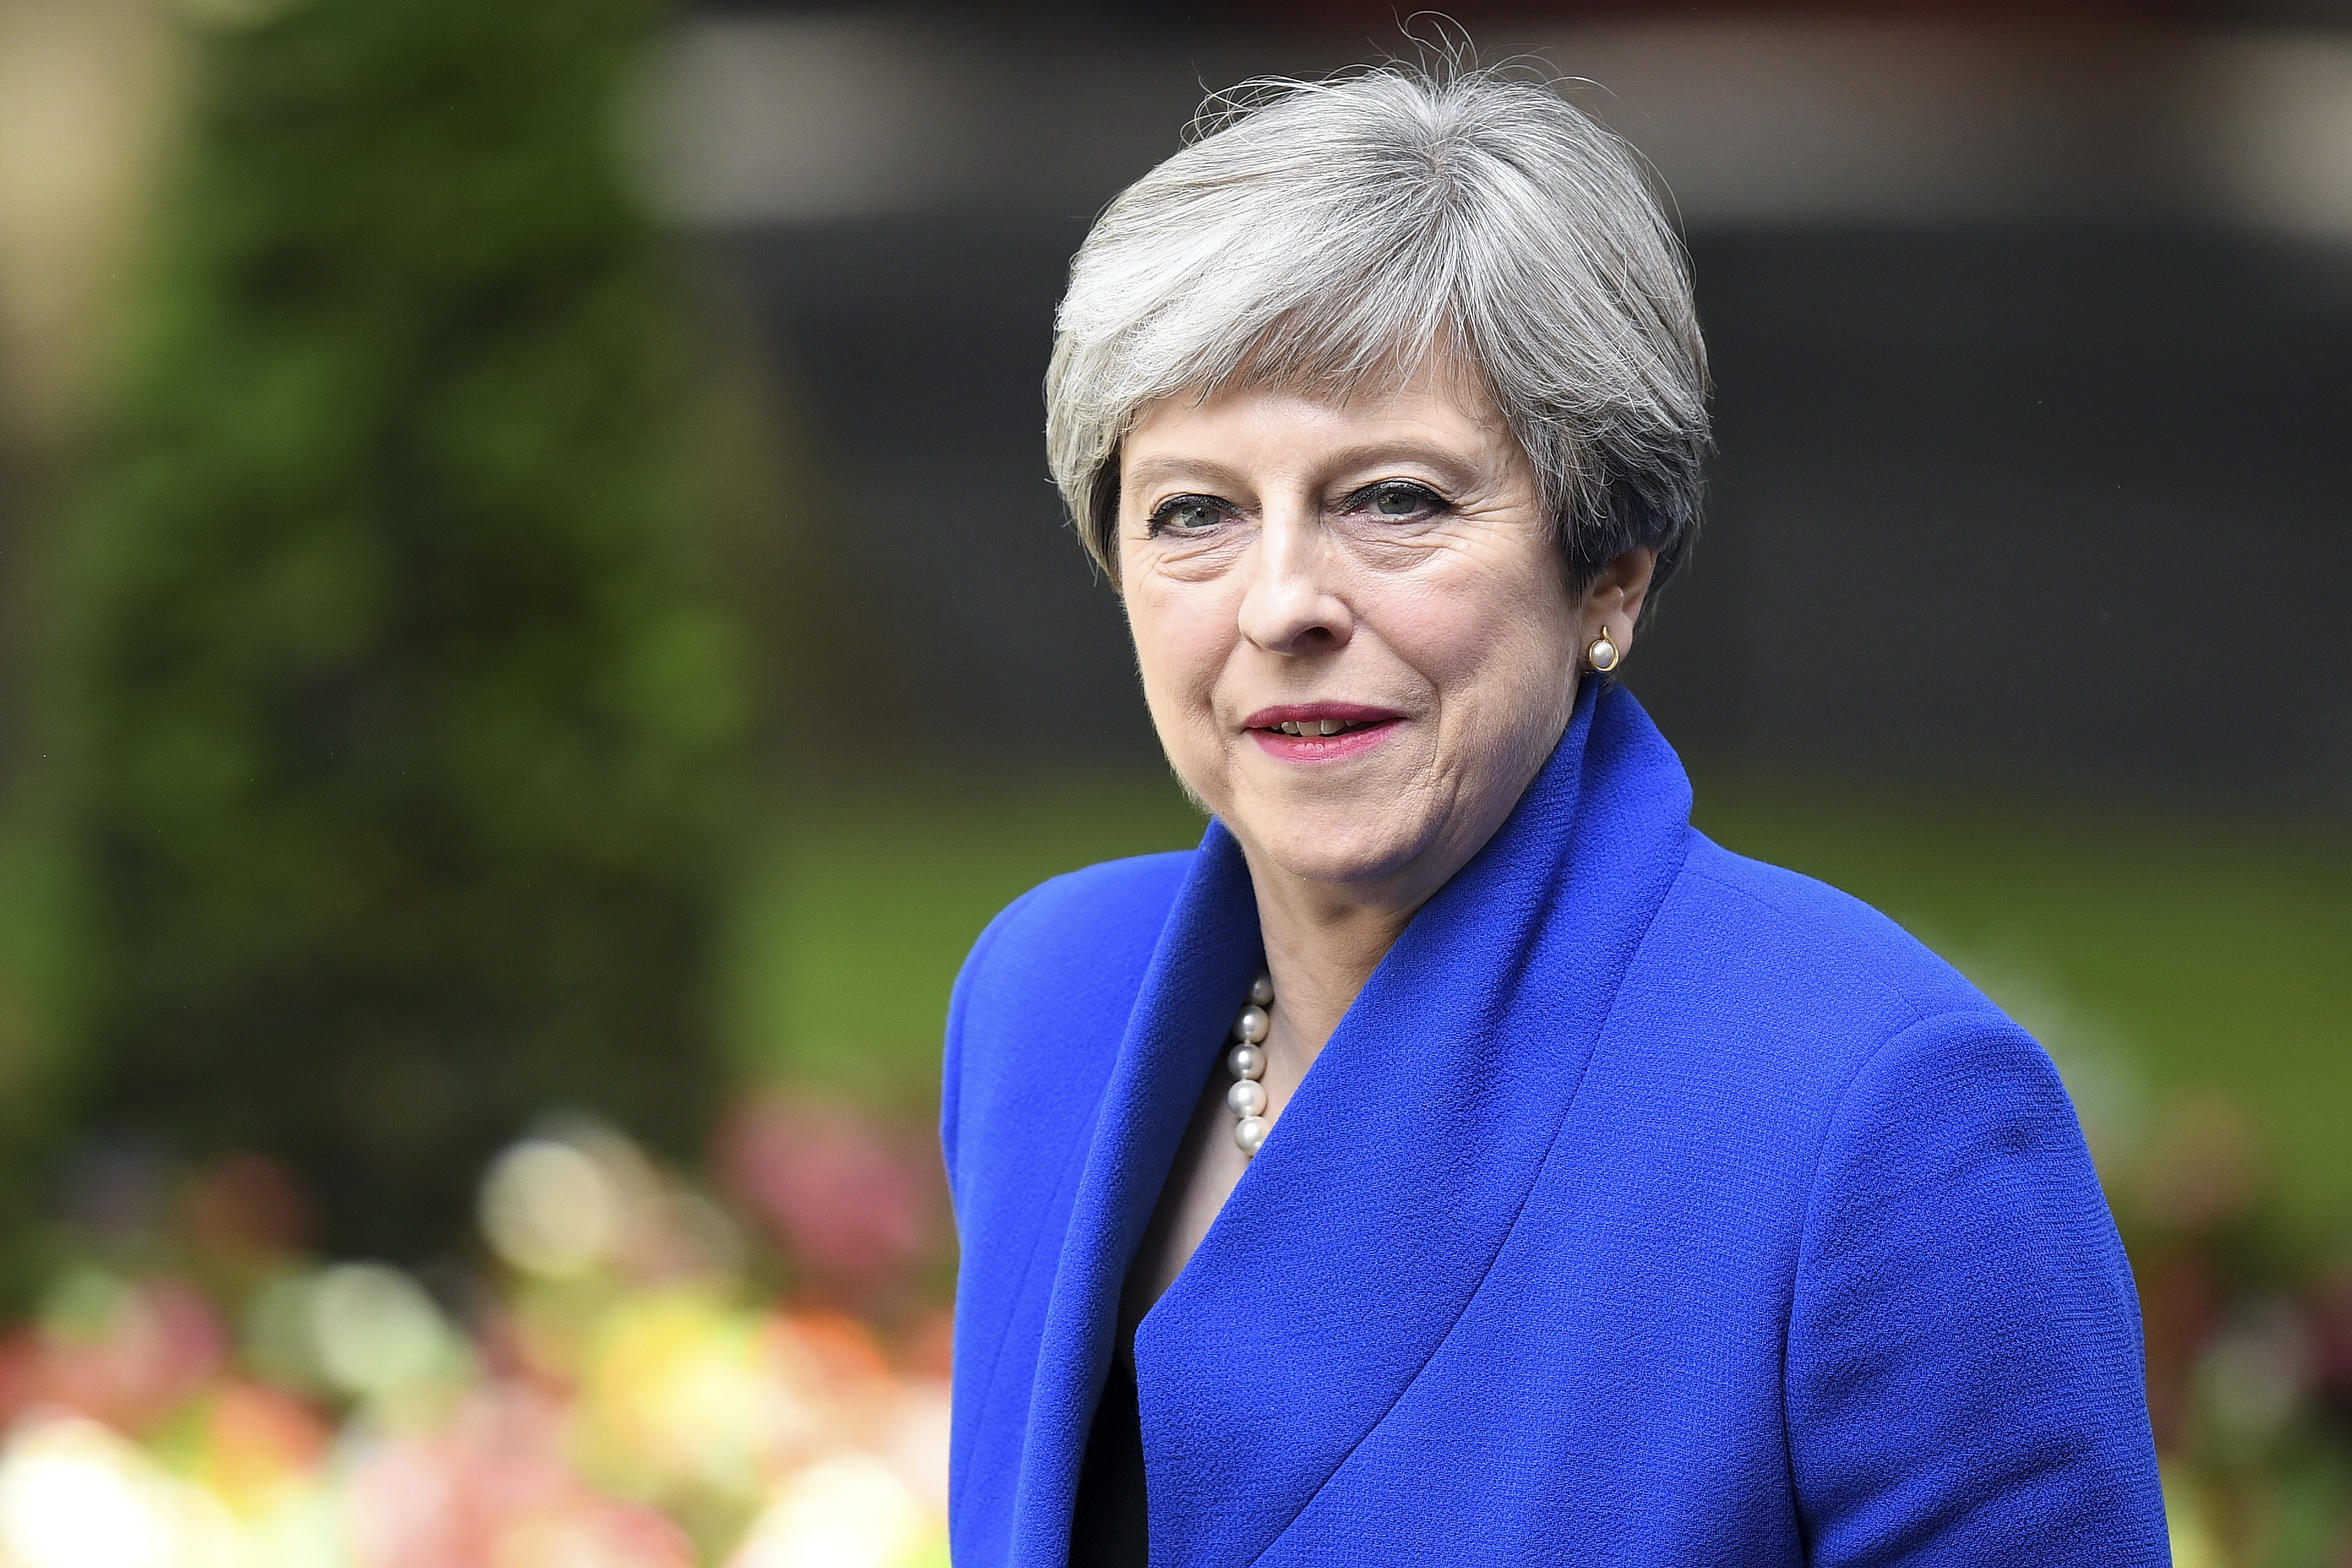 Theresa May is expected to officially resign as the UK's prime minister at Buckingham Palace on July 24.